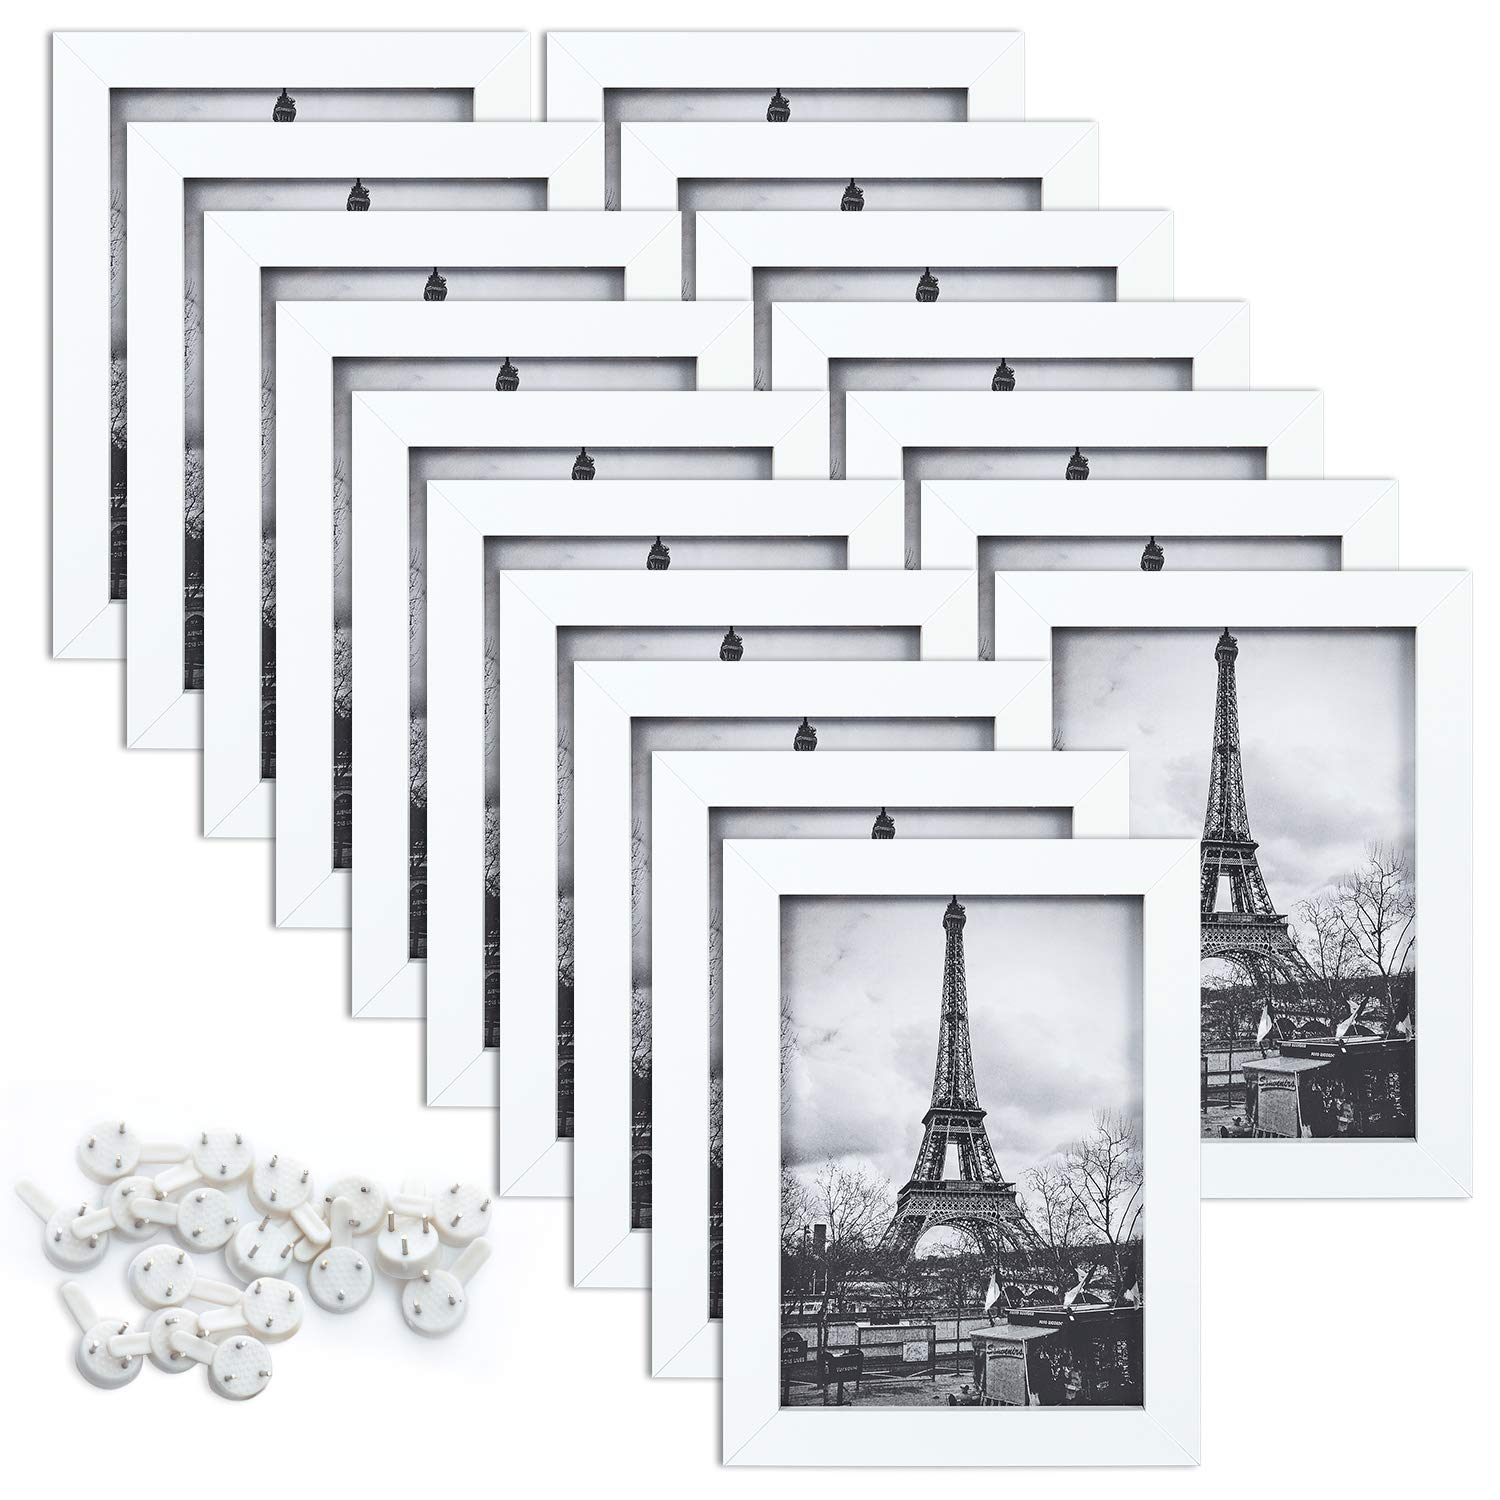 upsimples 5x7 Picture Frame Set of 17,Multi Photo Frames Collage for Wall or Tabletop Display,White by upsimples